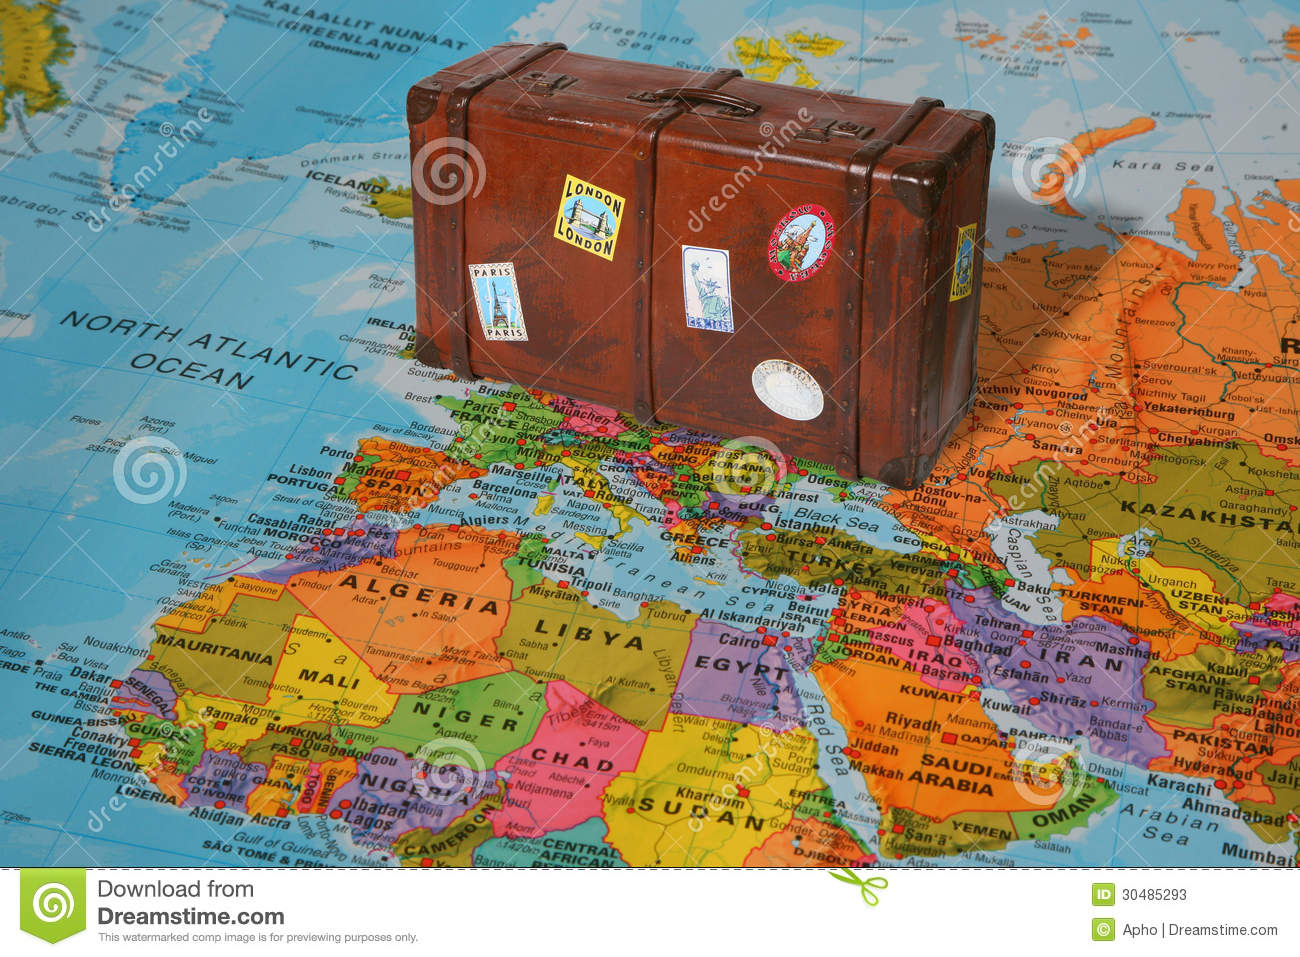 travel-suitcase-world-map-30485293.jpg